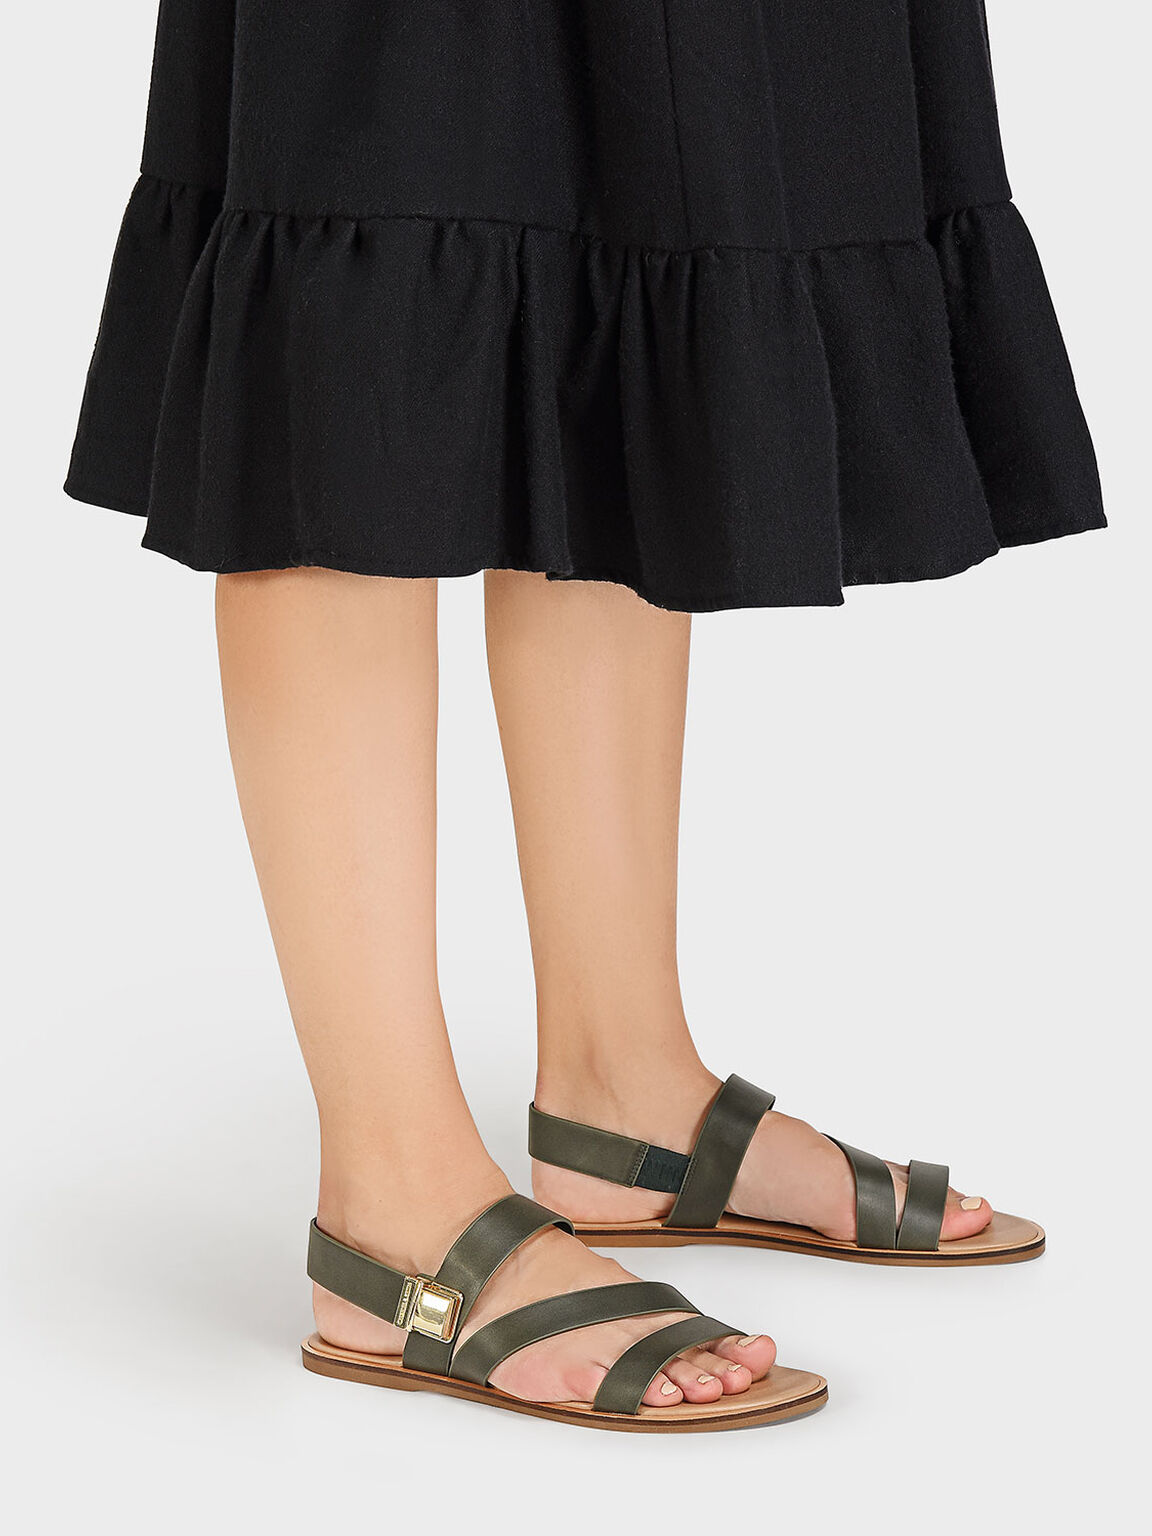 Strappy Open-Toe Sandals, Olive, hi-res